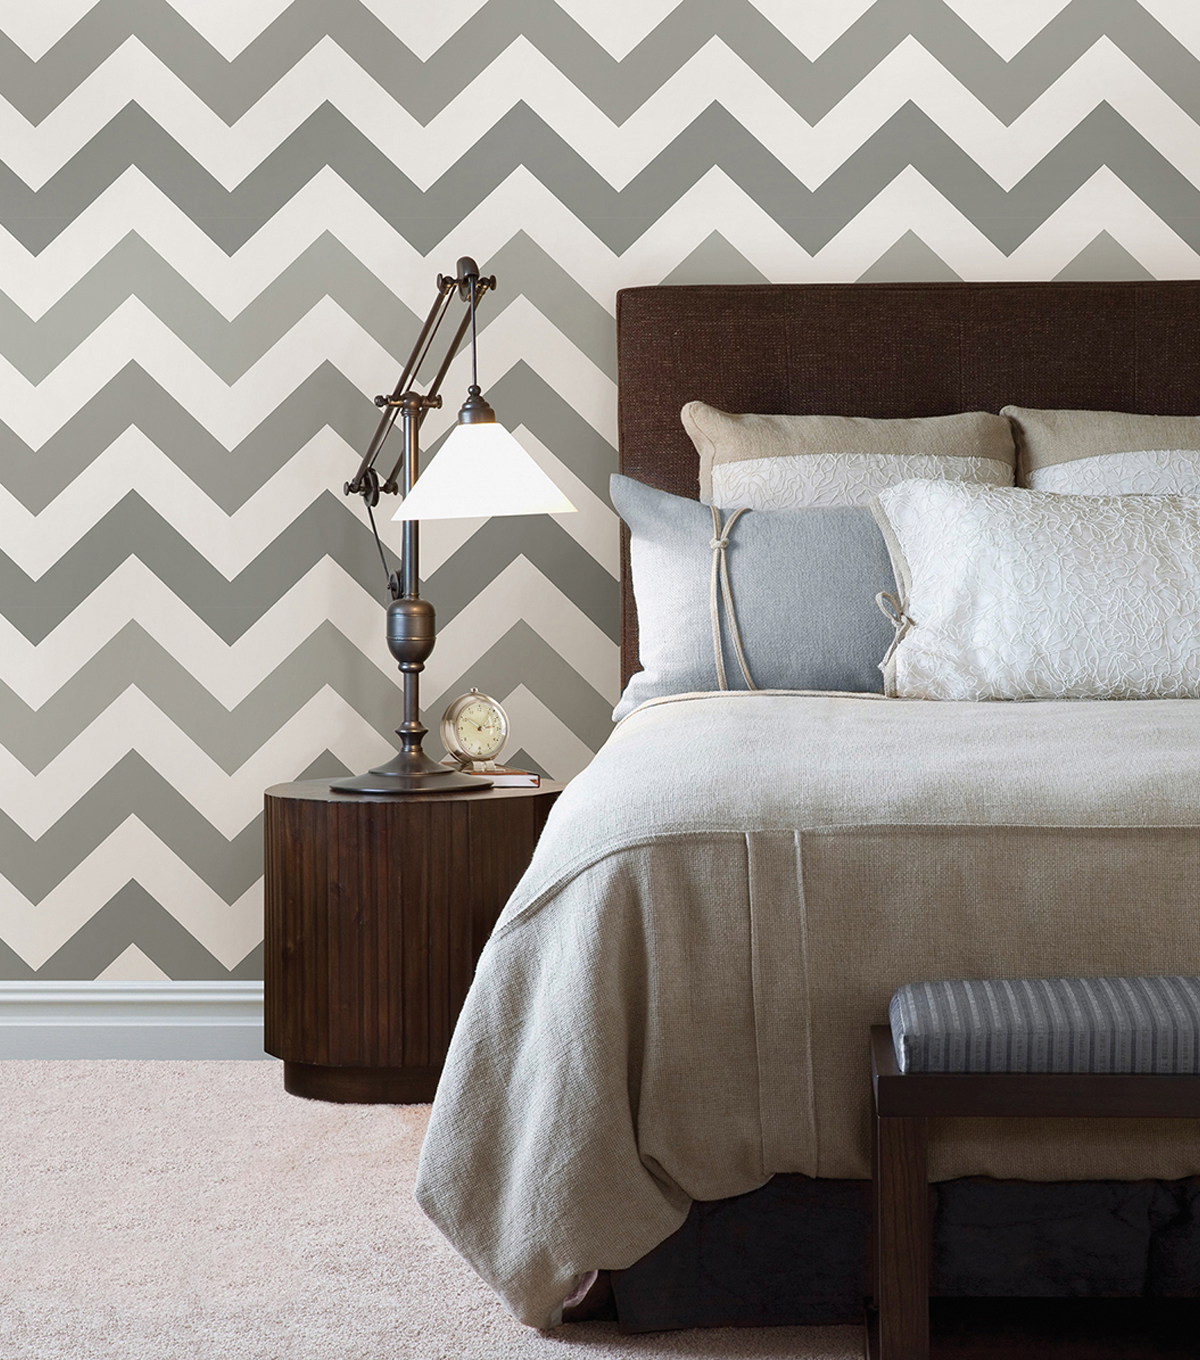 WallPops NuWallpaper Peel & Stick Wallpaper-Gray Zig Zag